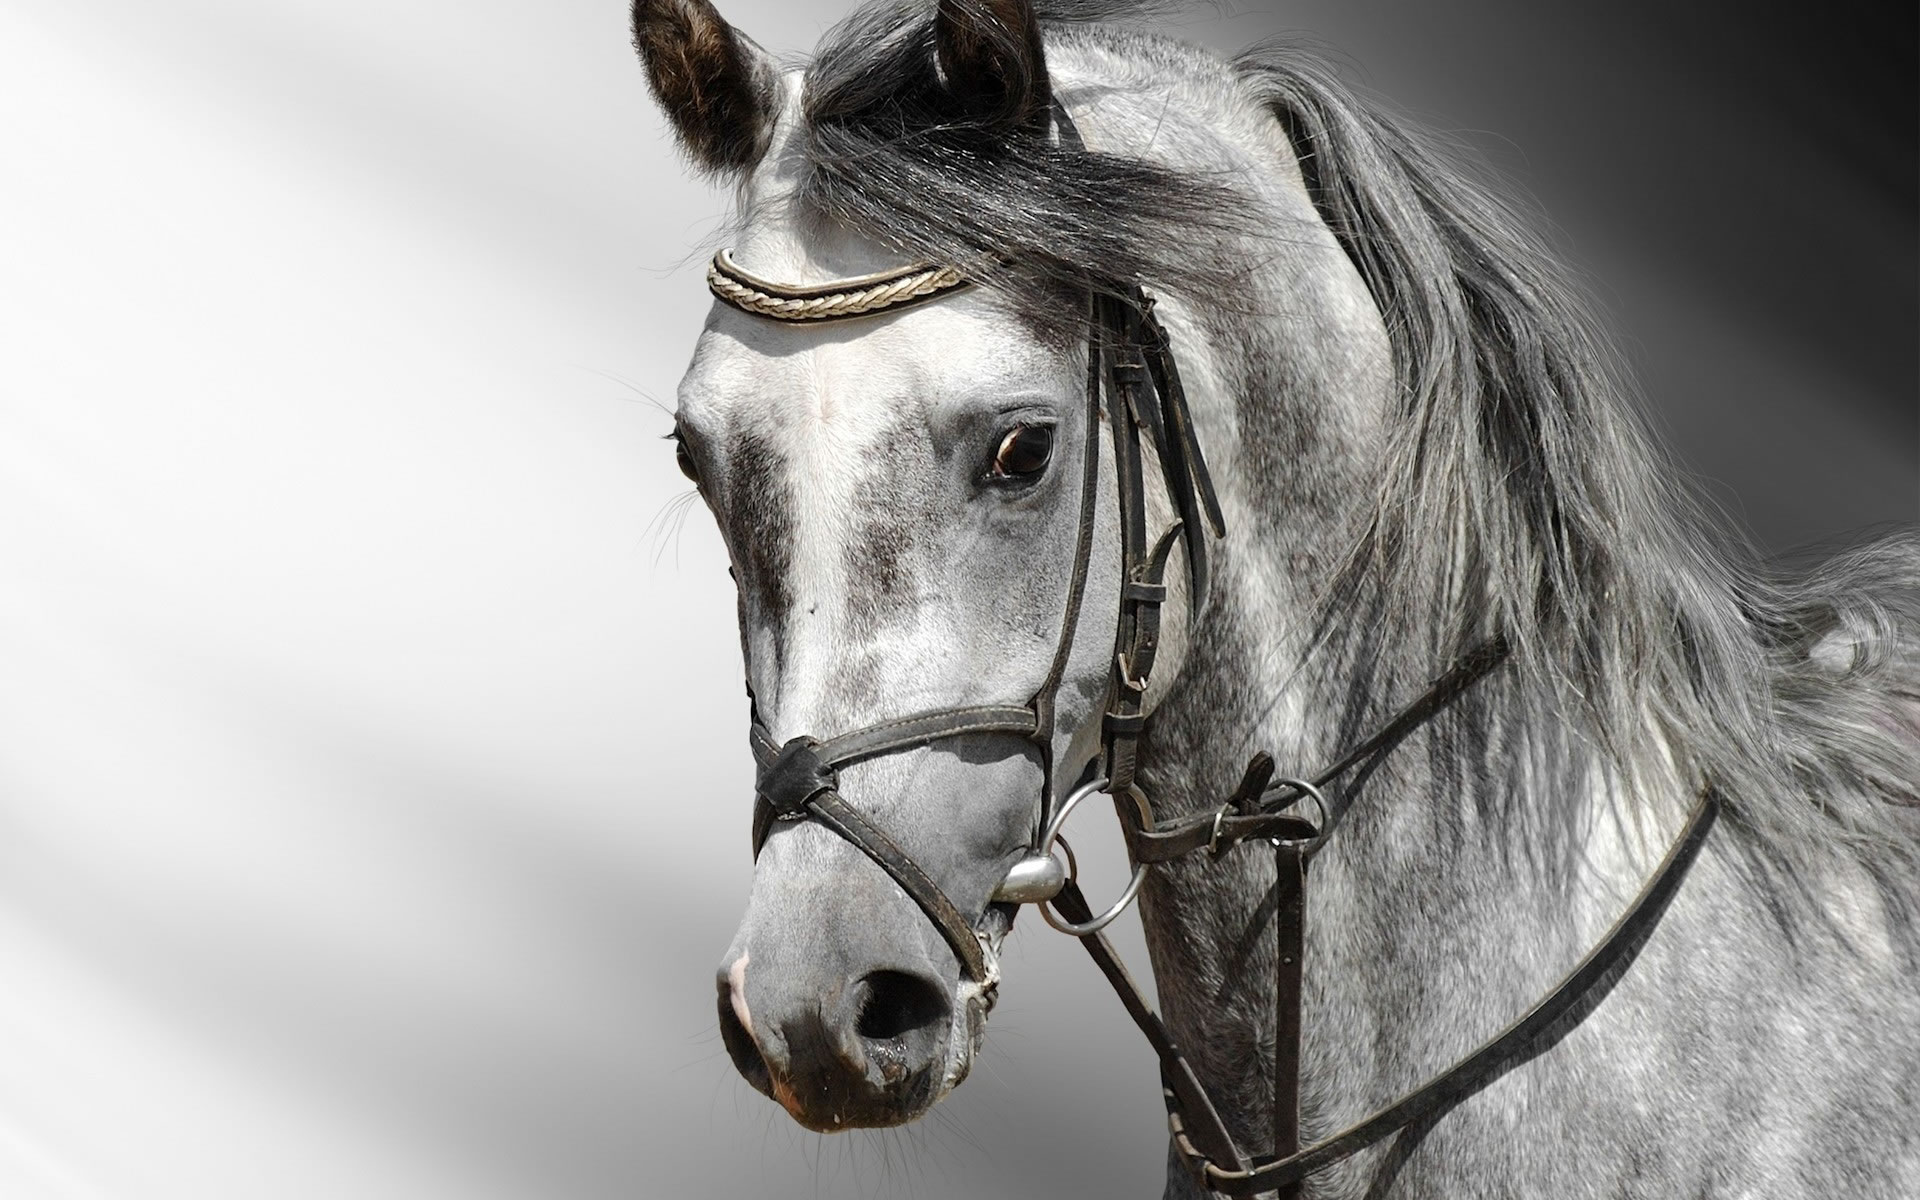 Caras de Caballo Wallpaper - Wallpapers - Wallpapers